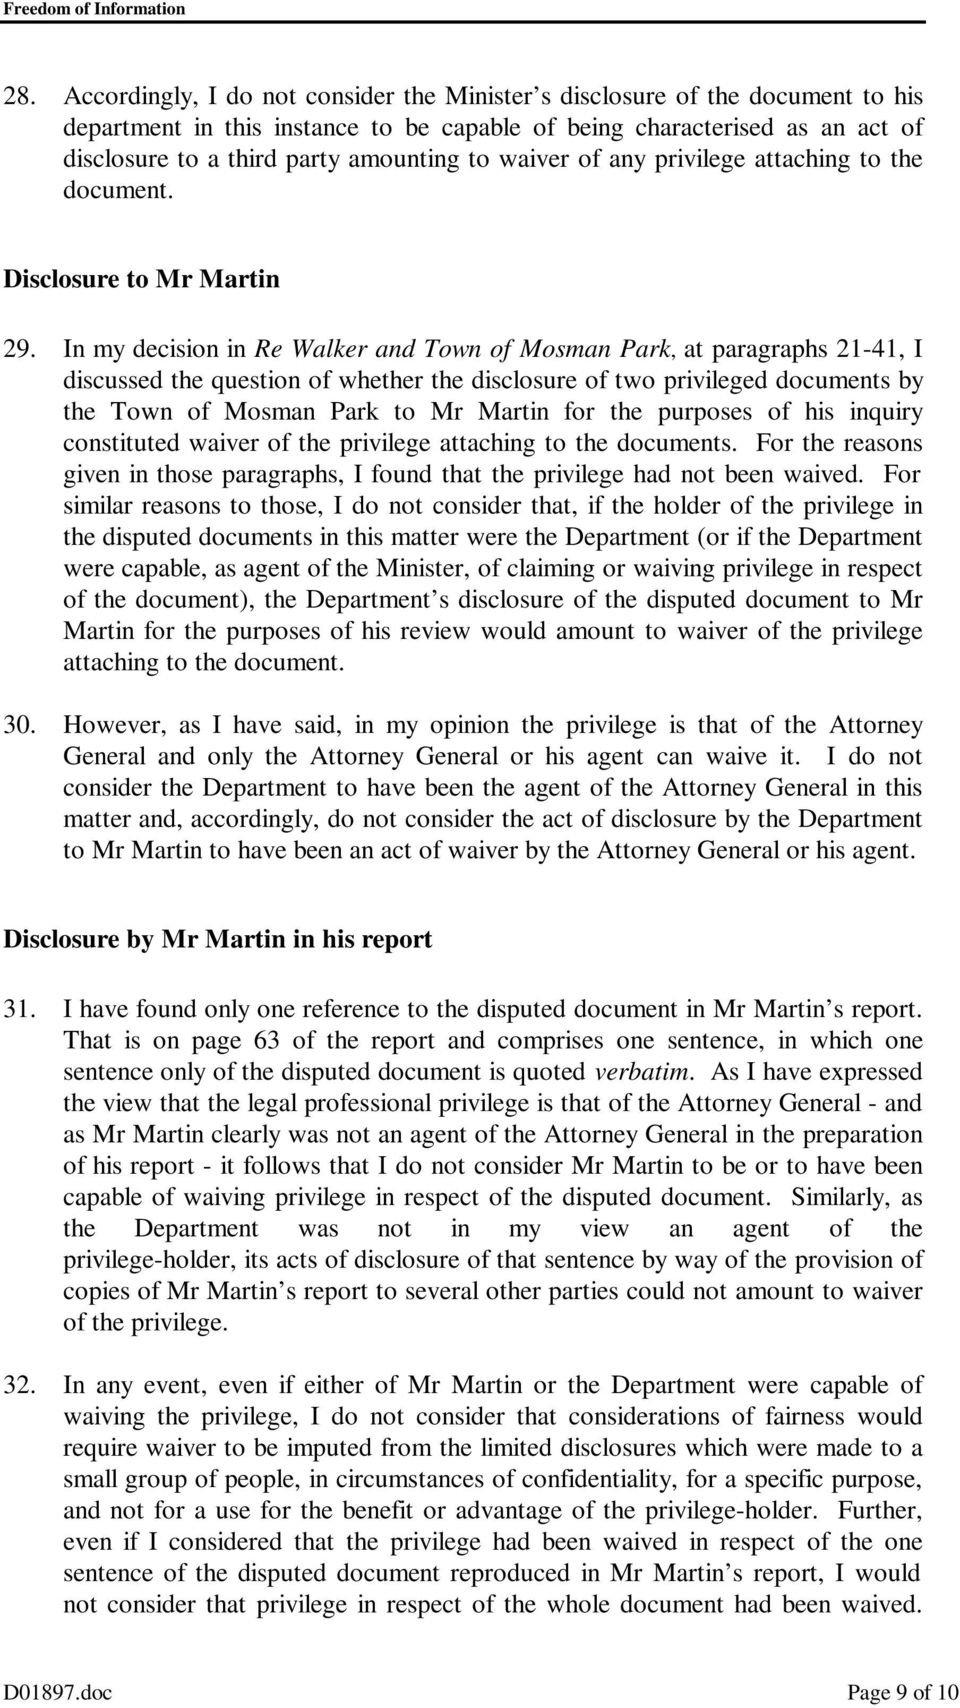 In my decision in Re Walker and Town of Mosman Park, at paragraphs 21-41, I discussed the question of whether the disclosure of two privileged documents by the Town of Mosman Park to Mr Martin for